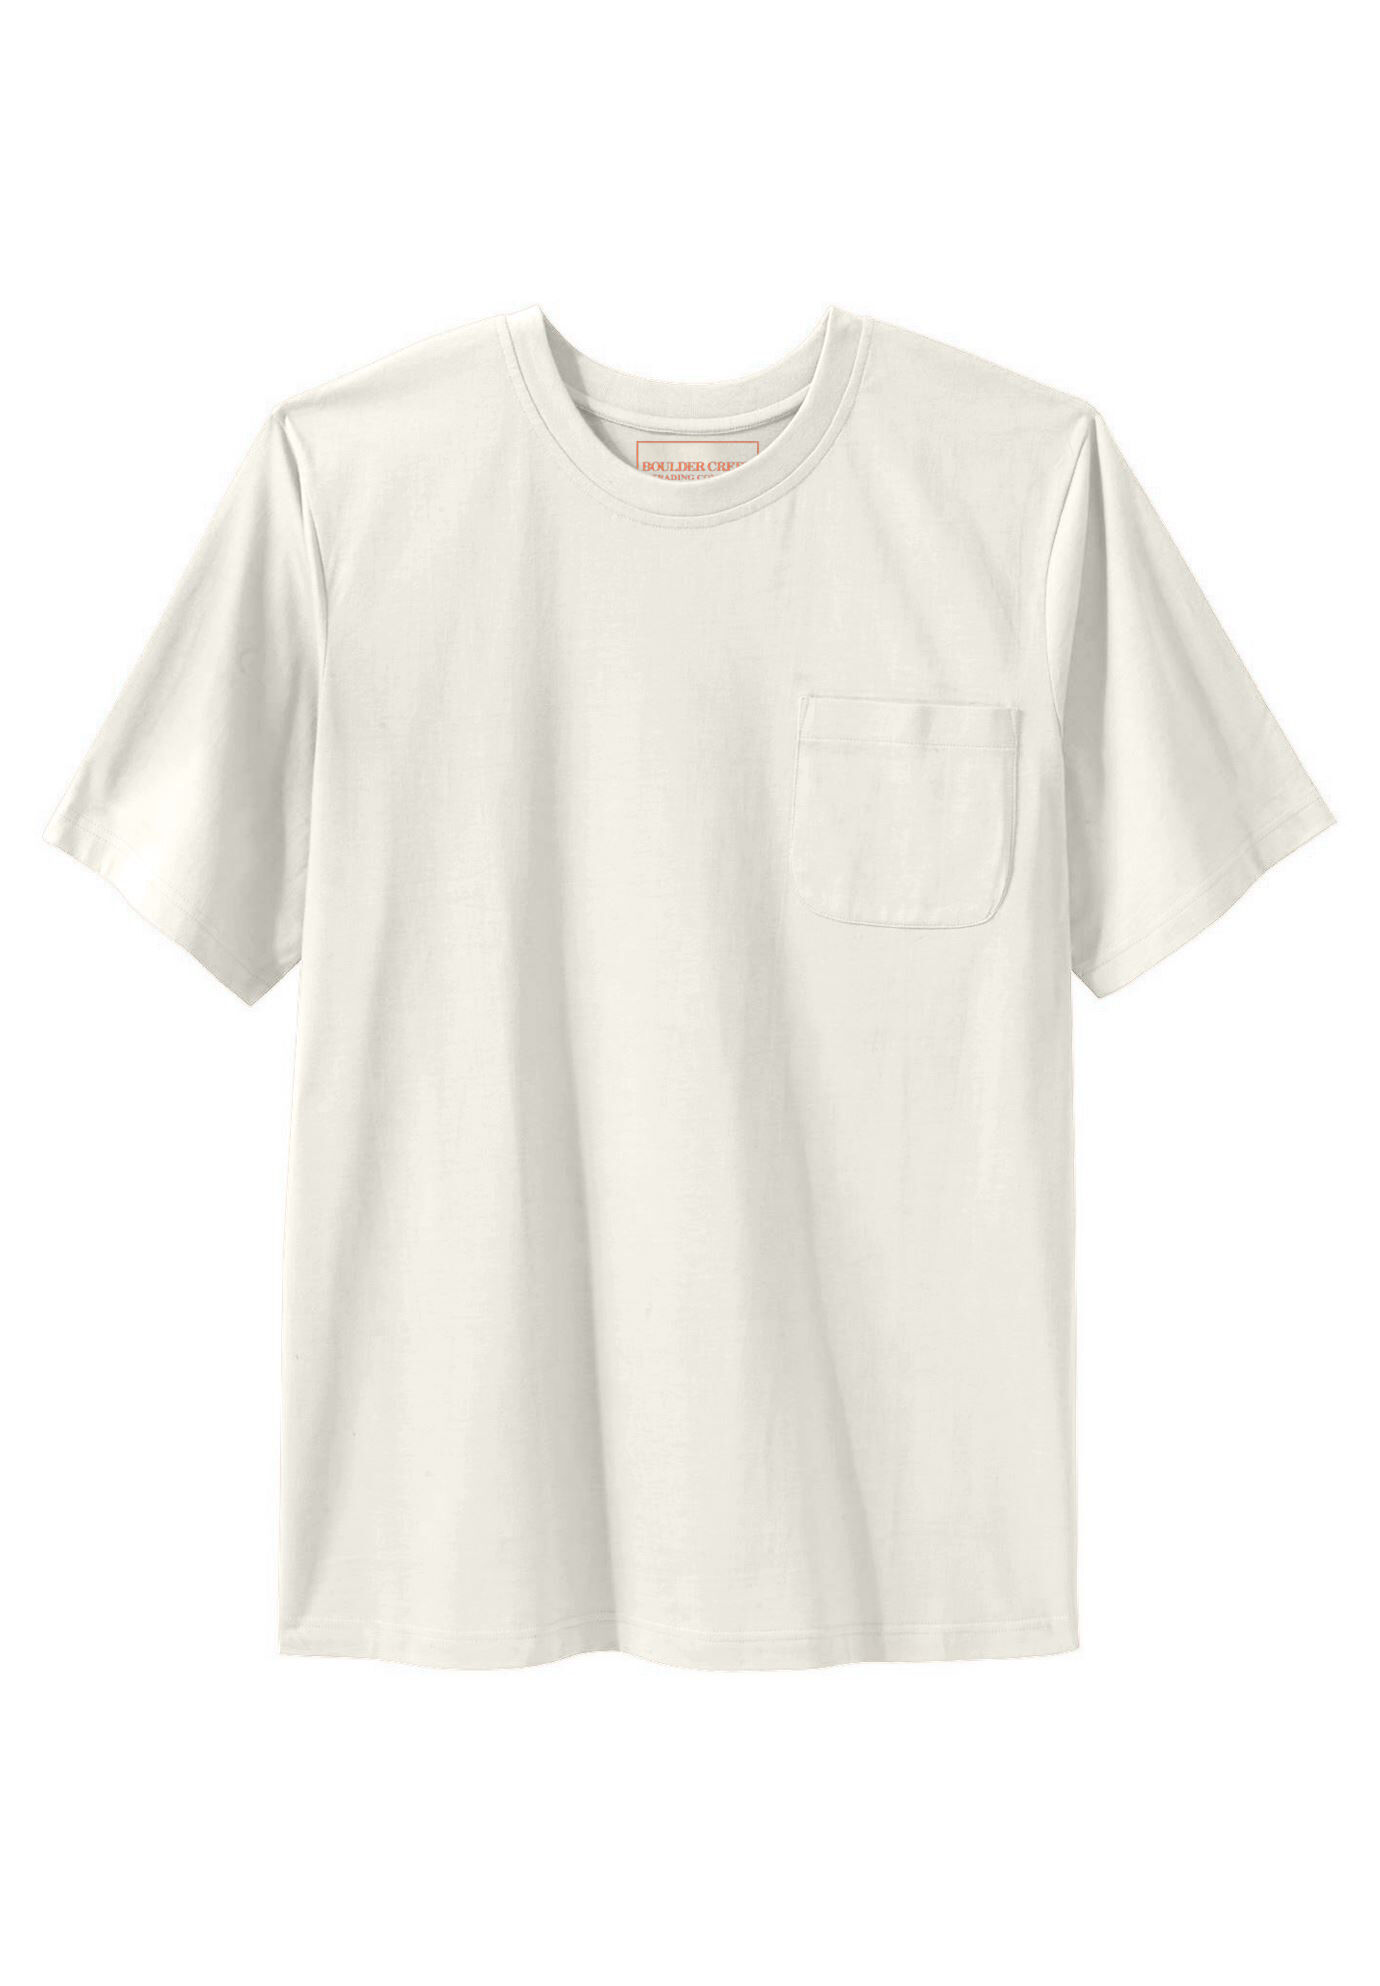 Big & Tall Shirts & Sweaters for Men | King Size